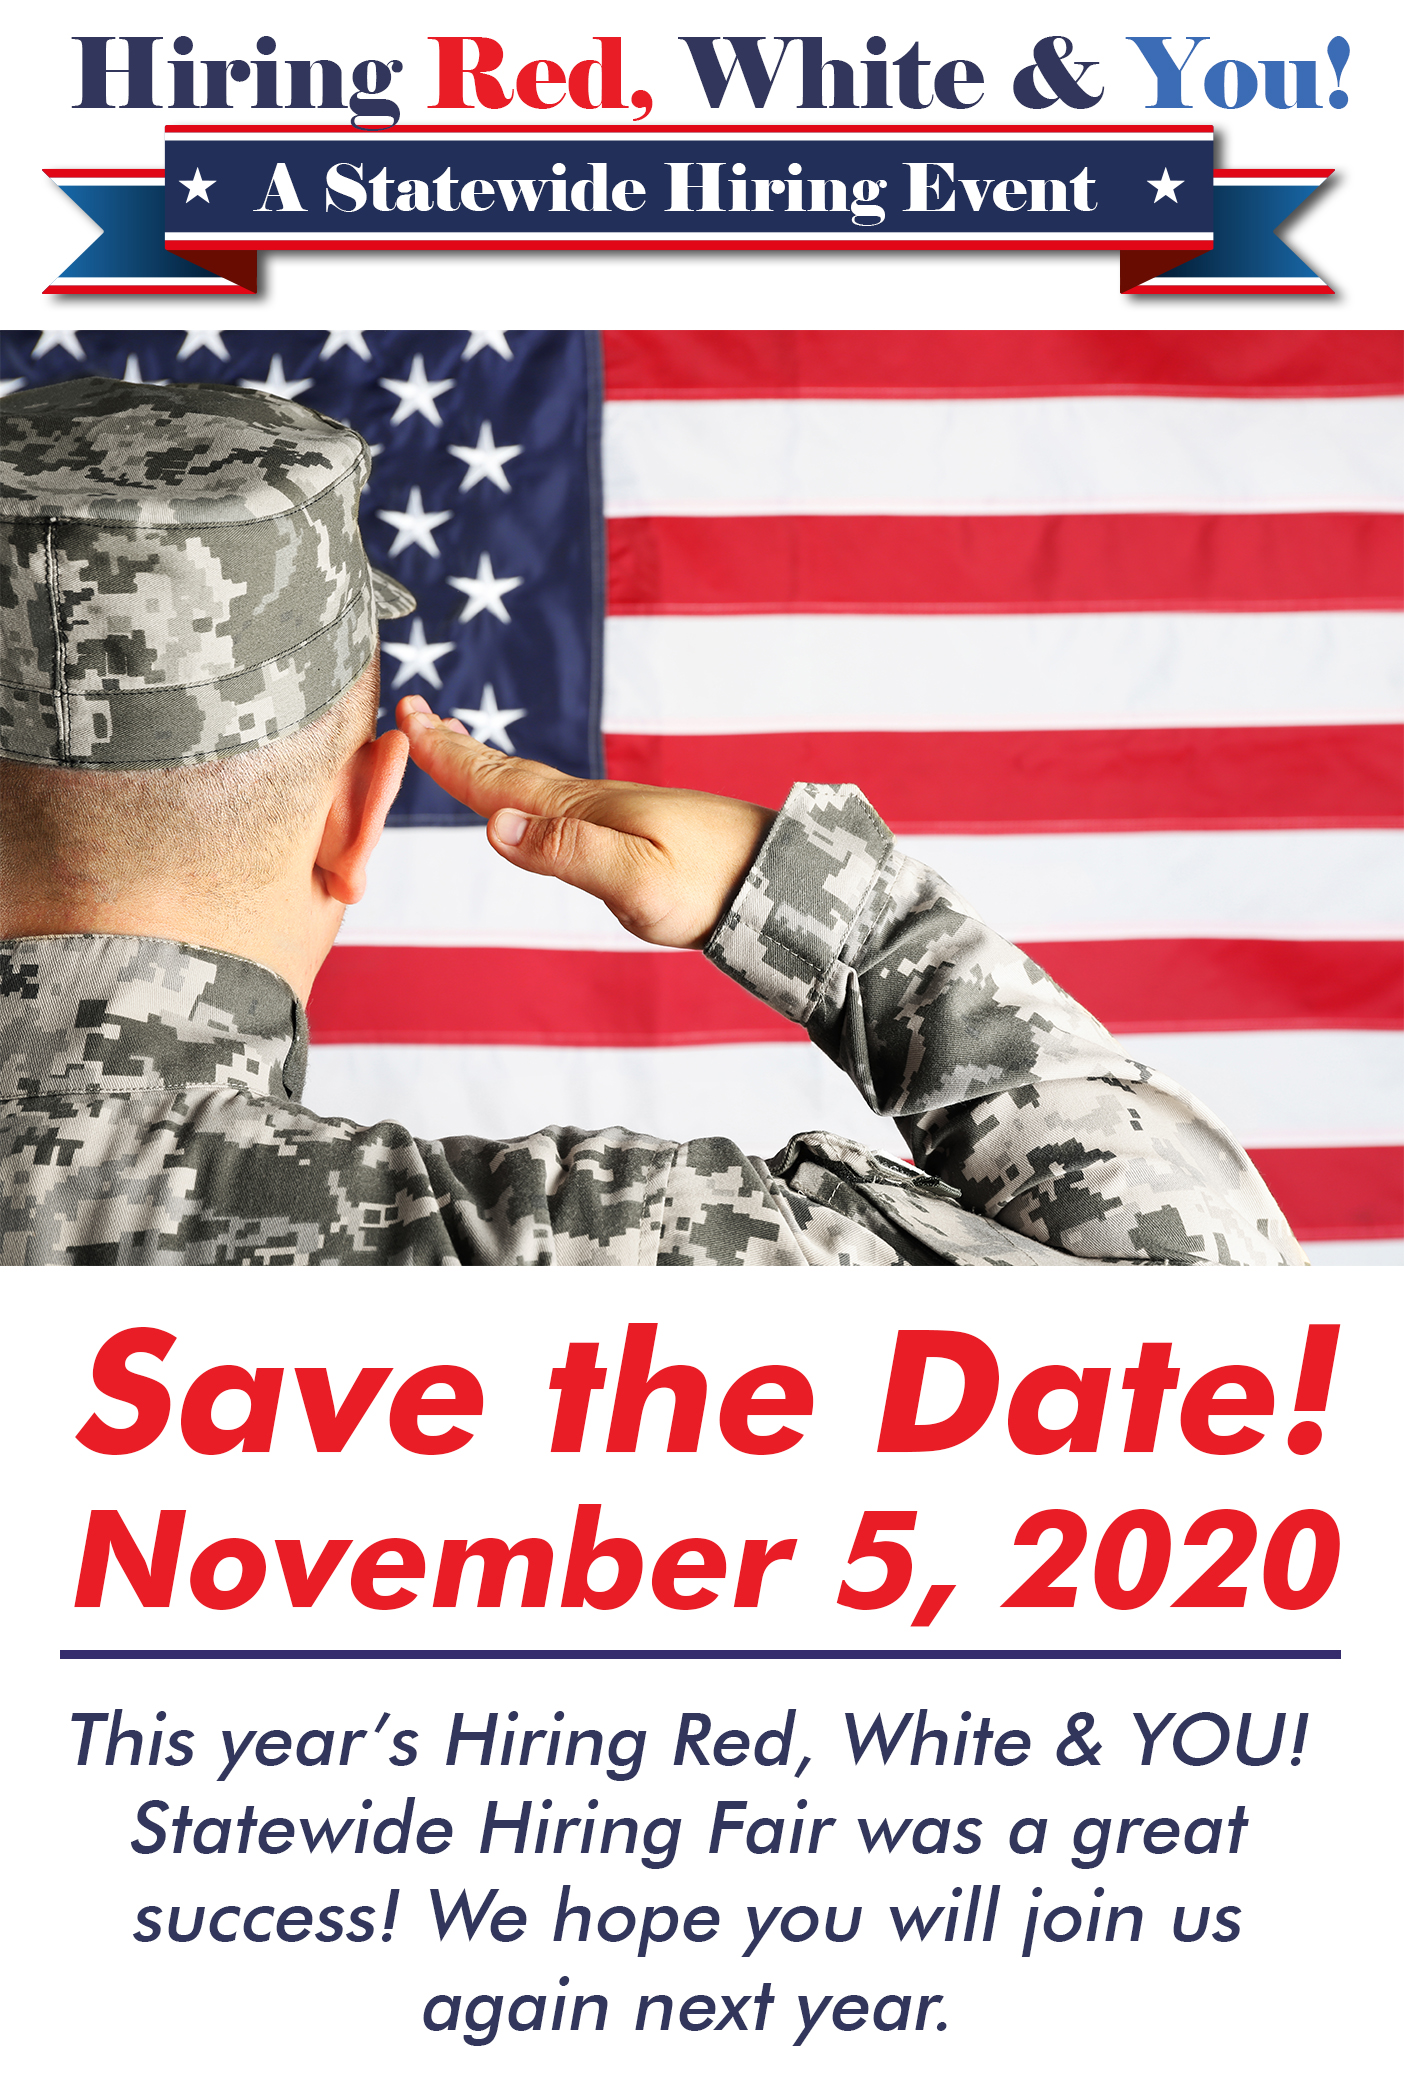 Employer Registration for Hiring Red, White & You! on November 7, 2019, from 9:00 AM - 2:00 PM at the American Bank Center